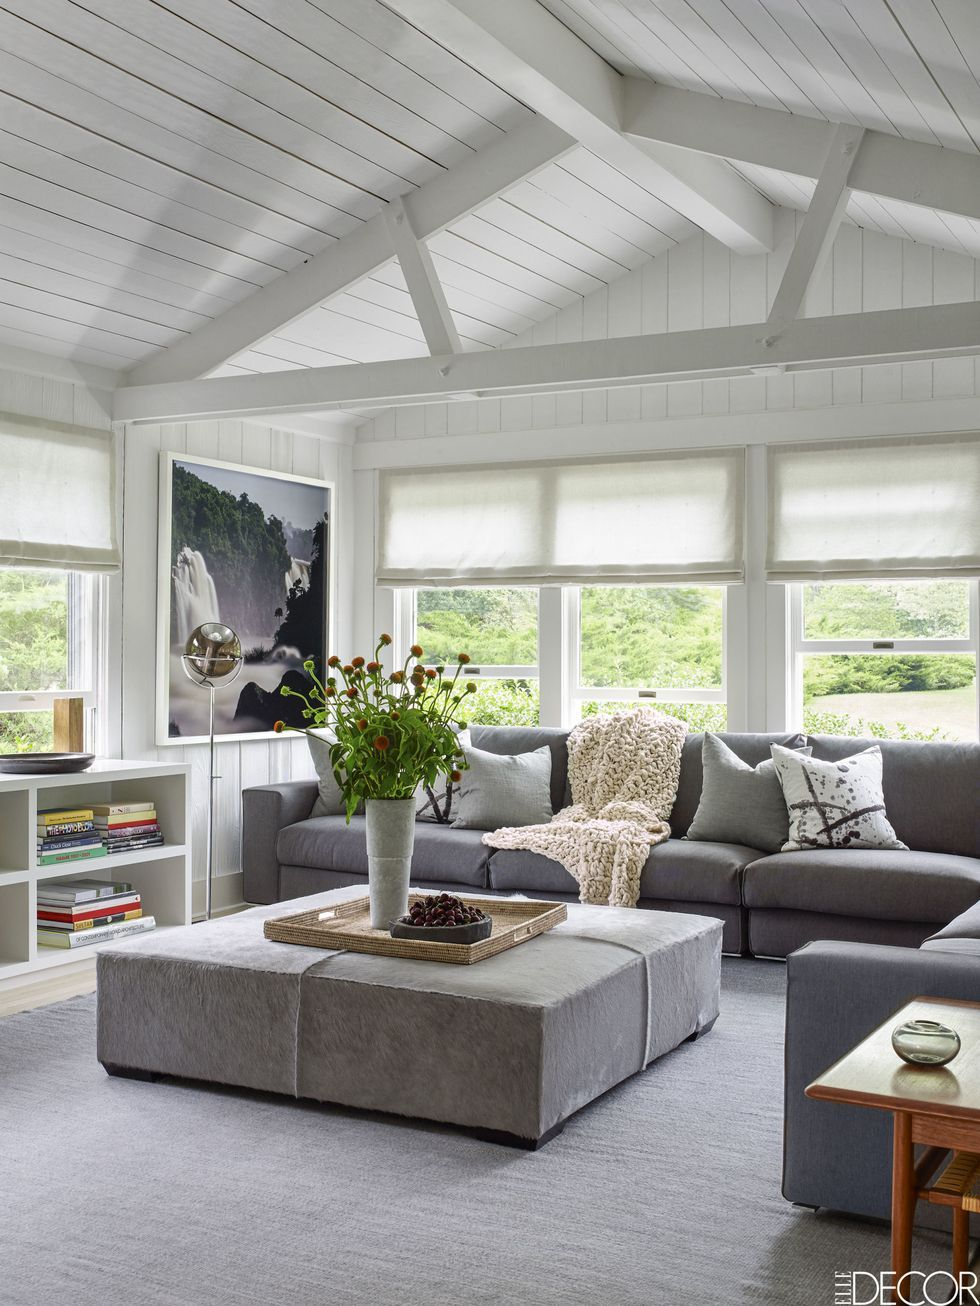 The Ultimate Guide to Vaulted Ceilings - Pros, Cons, and Inspiration